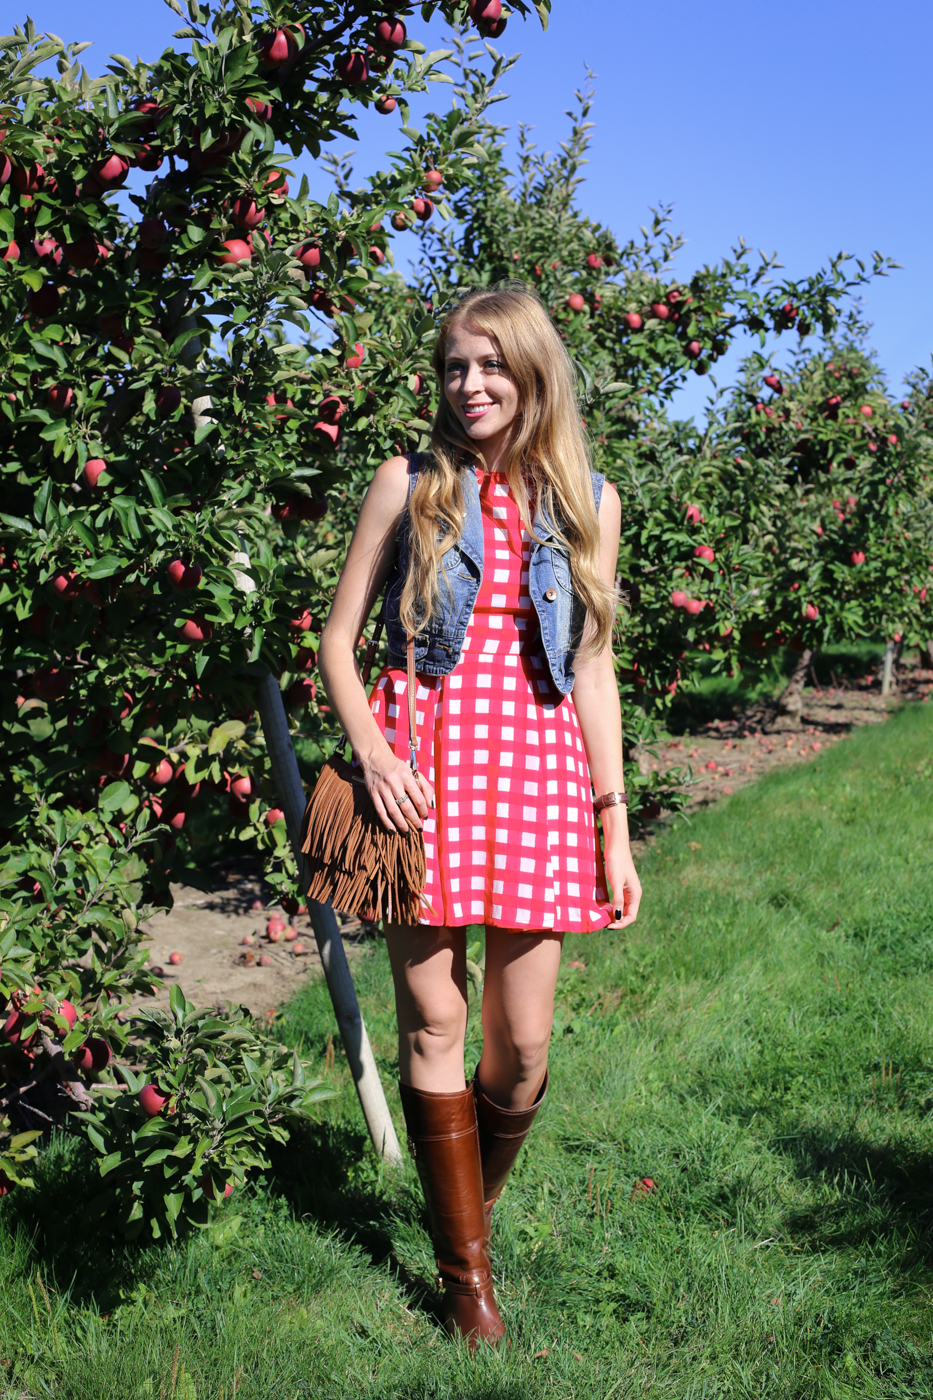 apple-picking-outfit-3-of-11